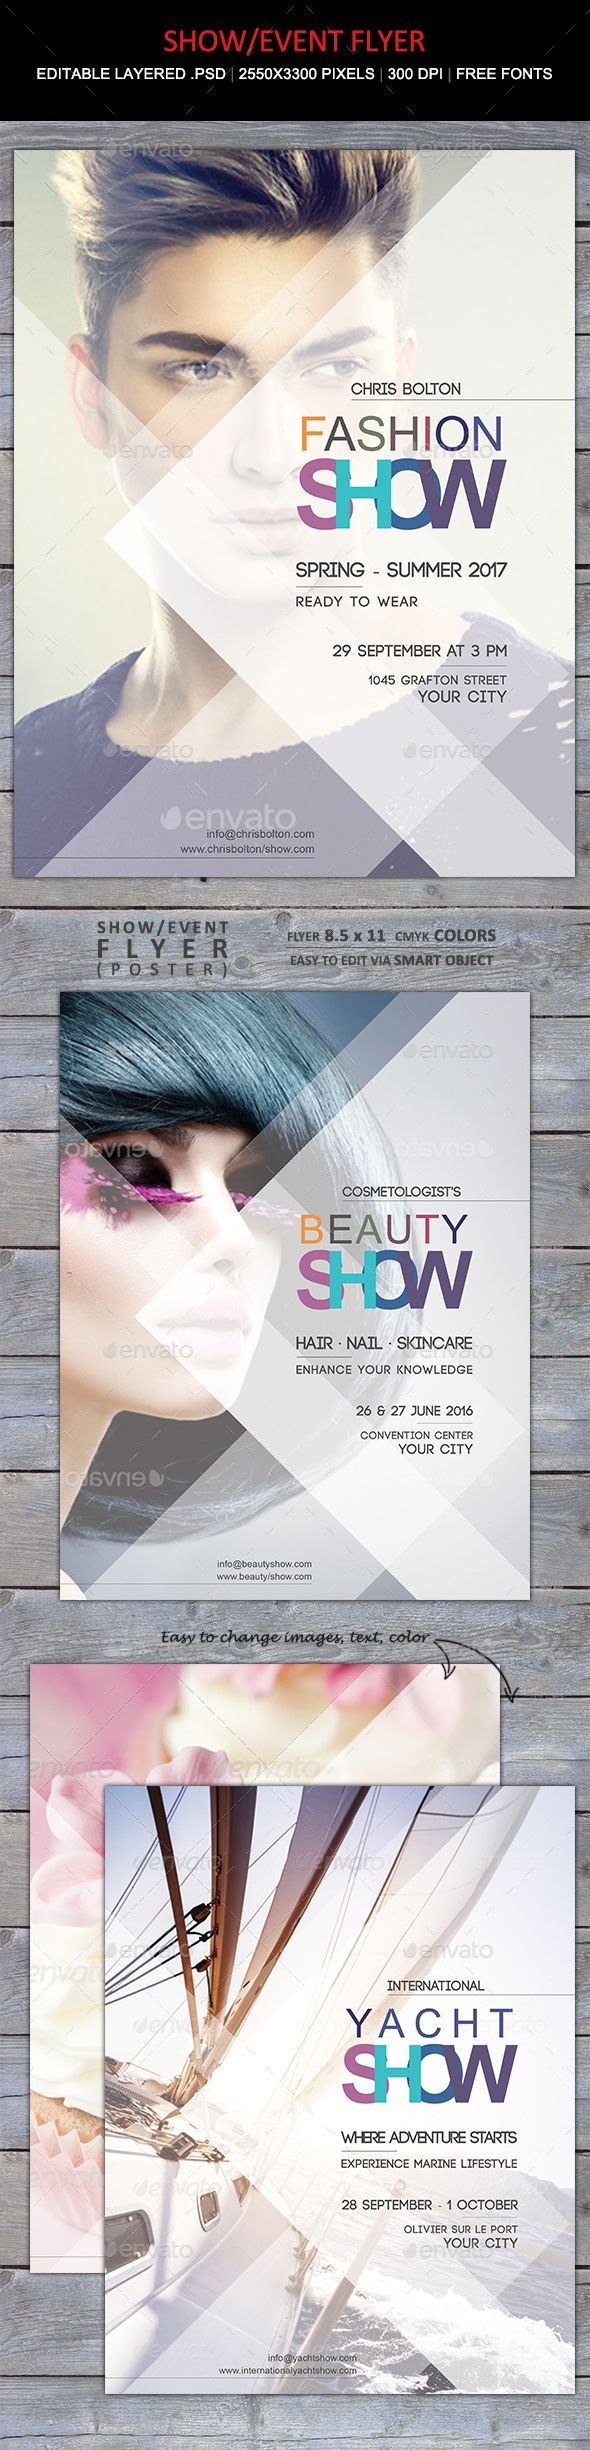 Trendy flyer – perfect for promoting: fashion show, designer event, jewelry, hair and beauty, or really any other event or show.